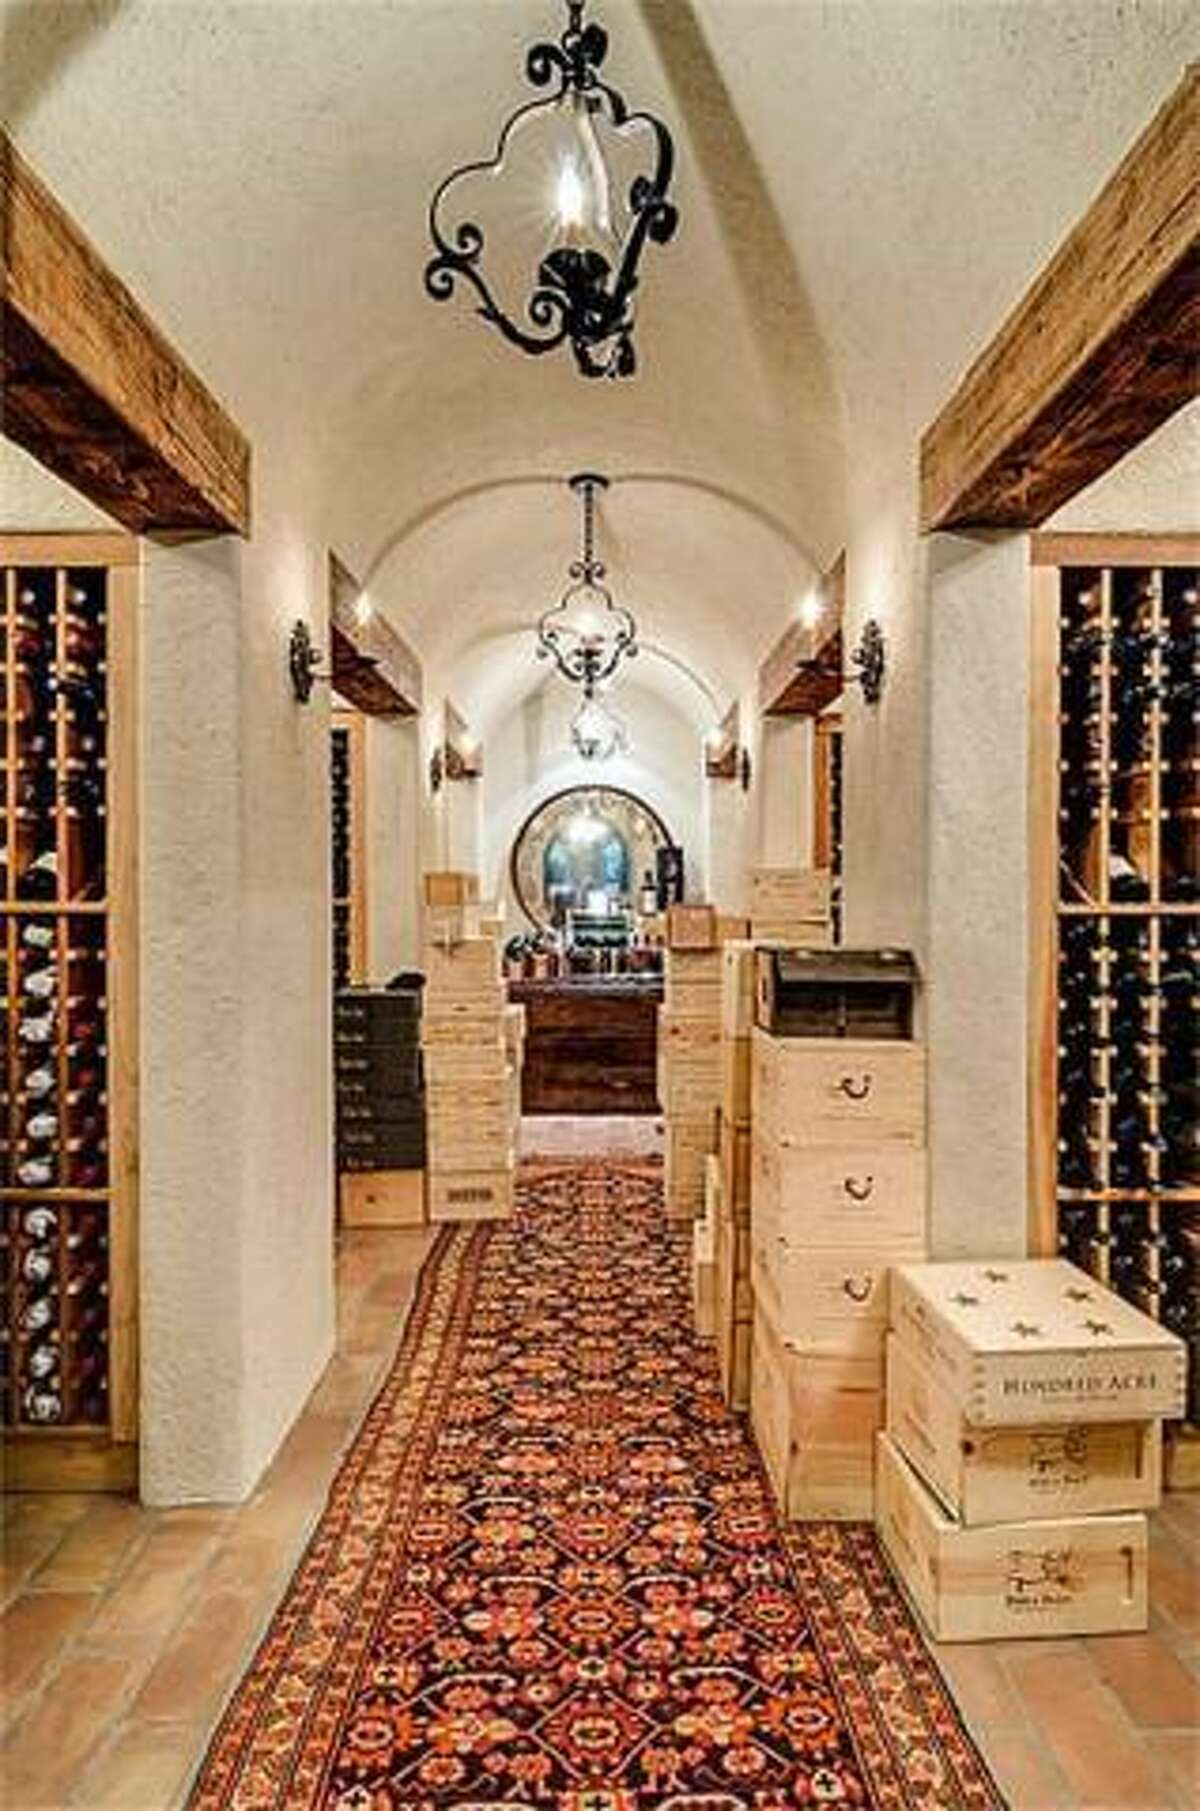 A full wine cellar is included with the property.